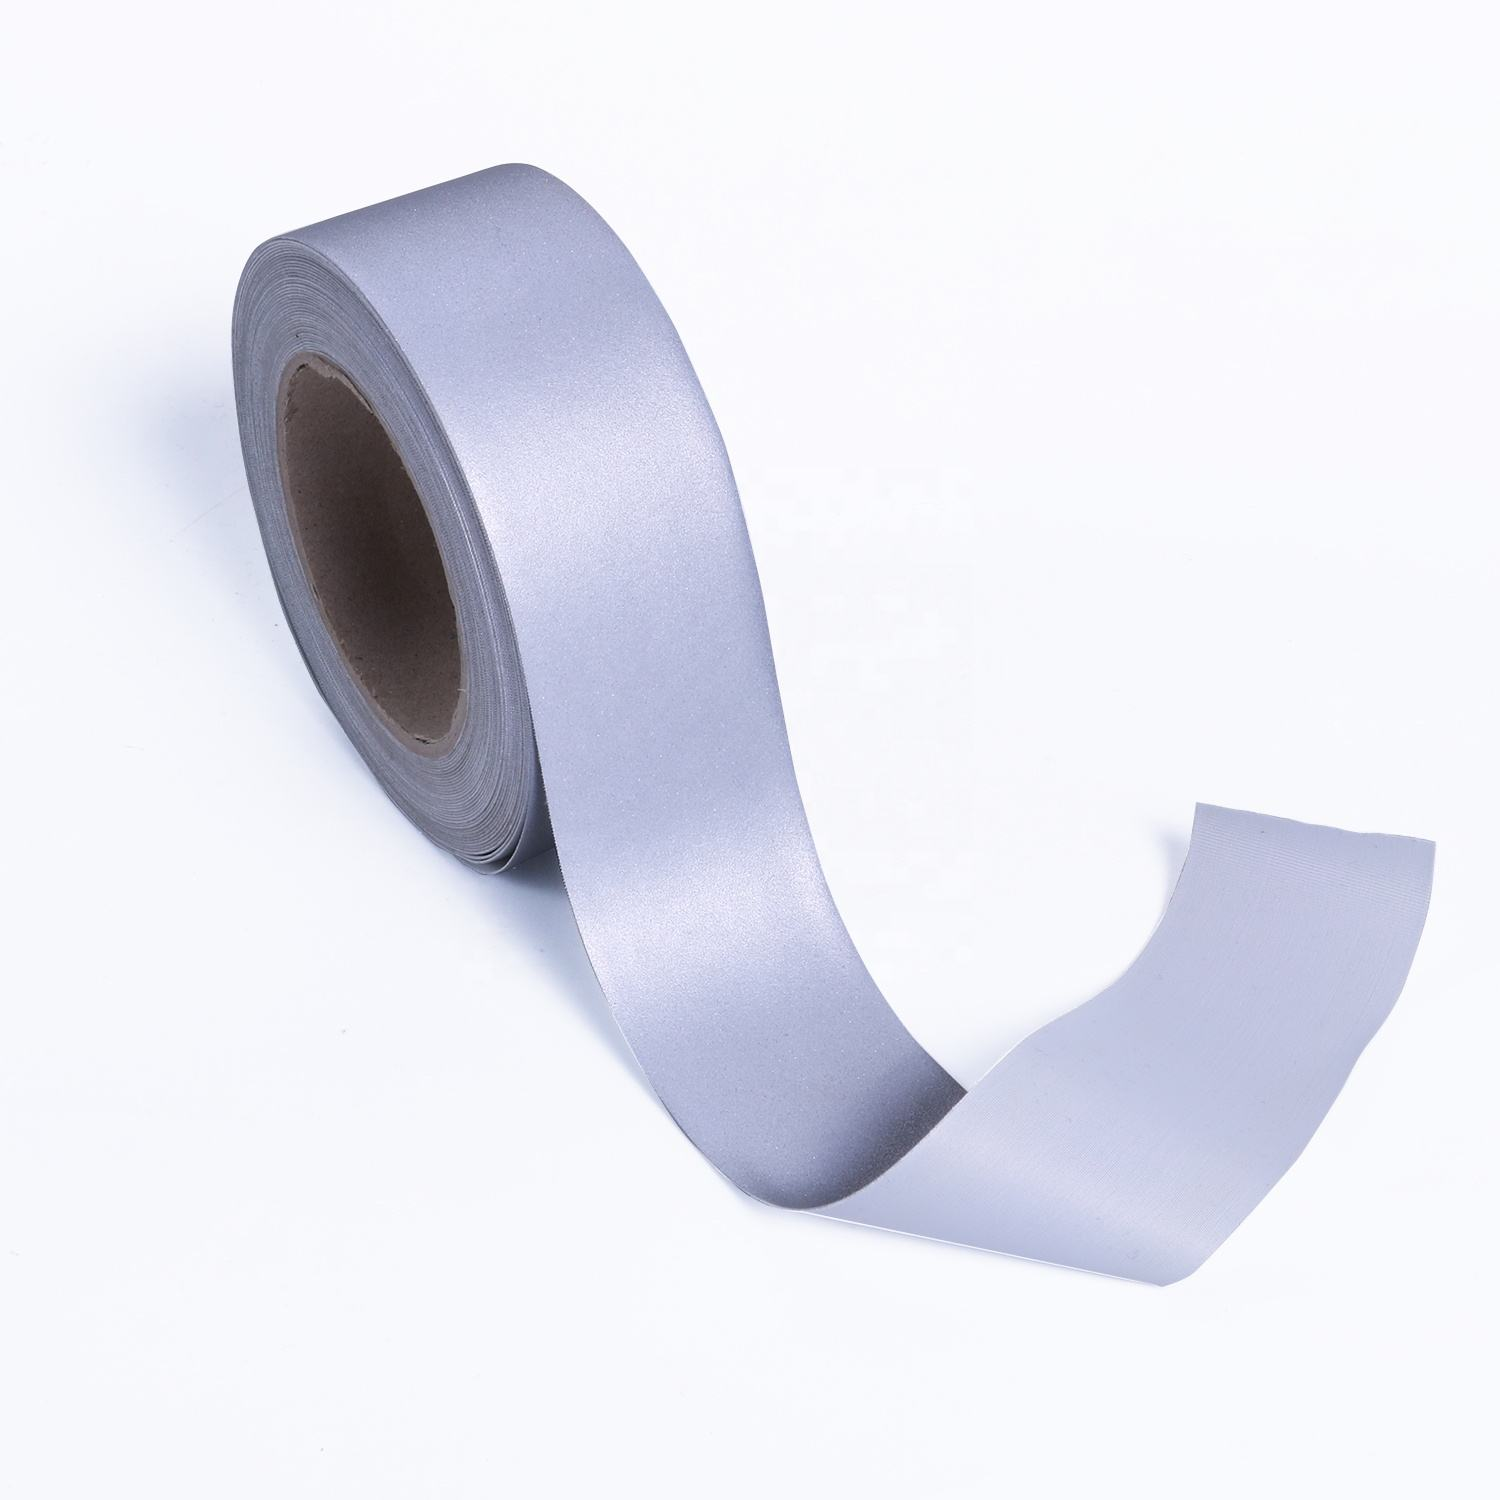 HT502 Industrial washing Sewing High washable retro Reflective Tape band